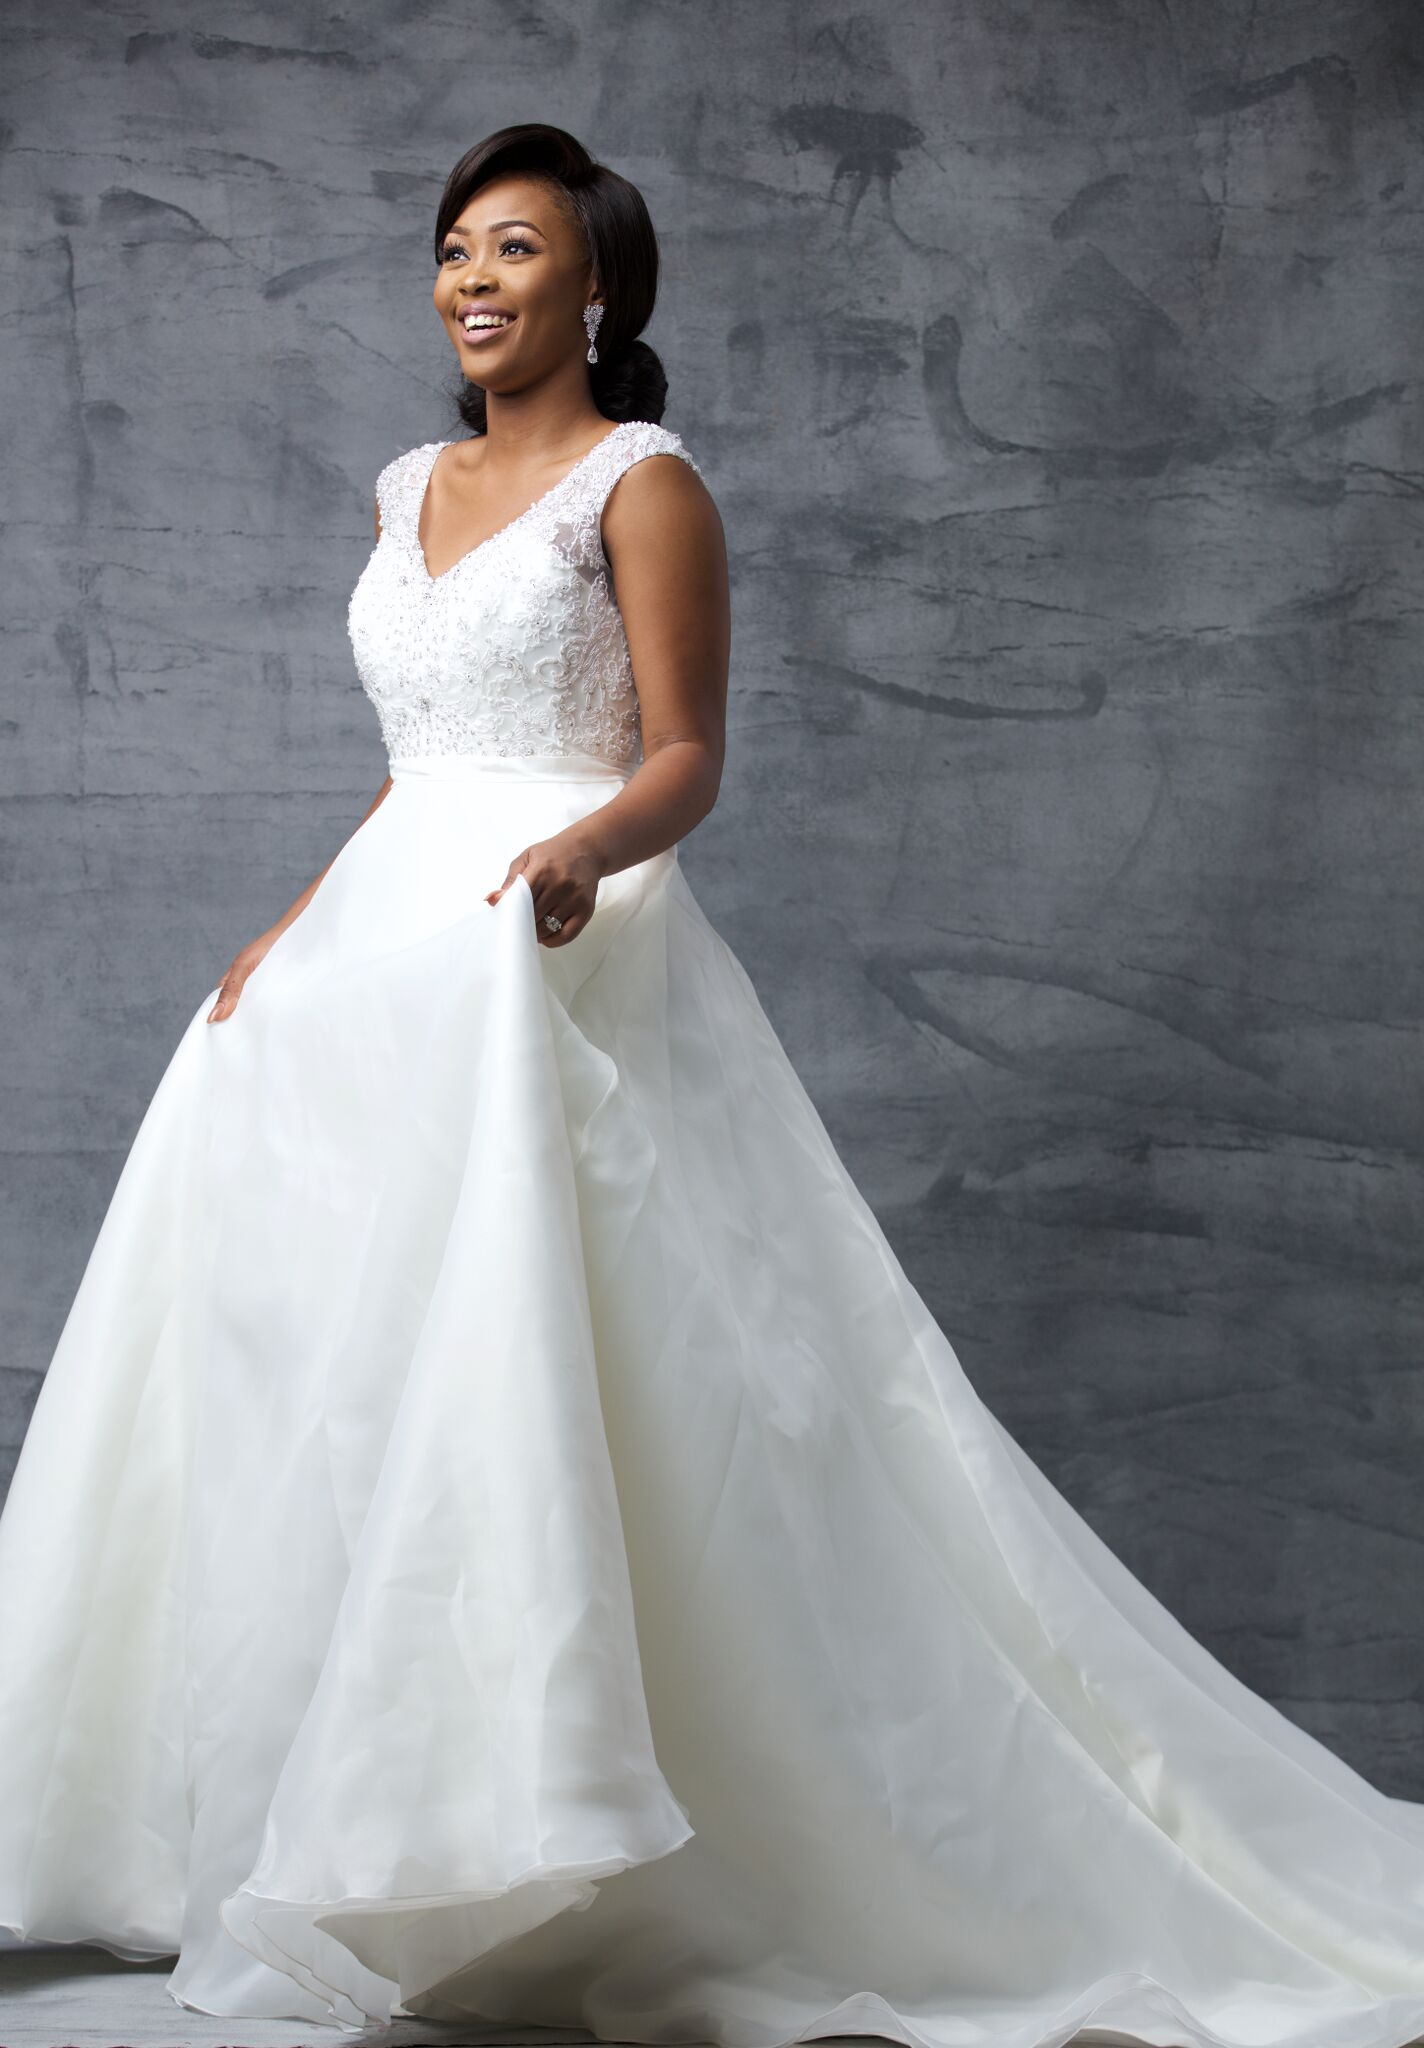 Estella: She is the bride who loves embellished simplicity. She loves clean lines and this is her subtle take on the classic ball gown silhouette.